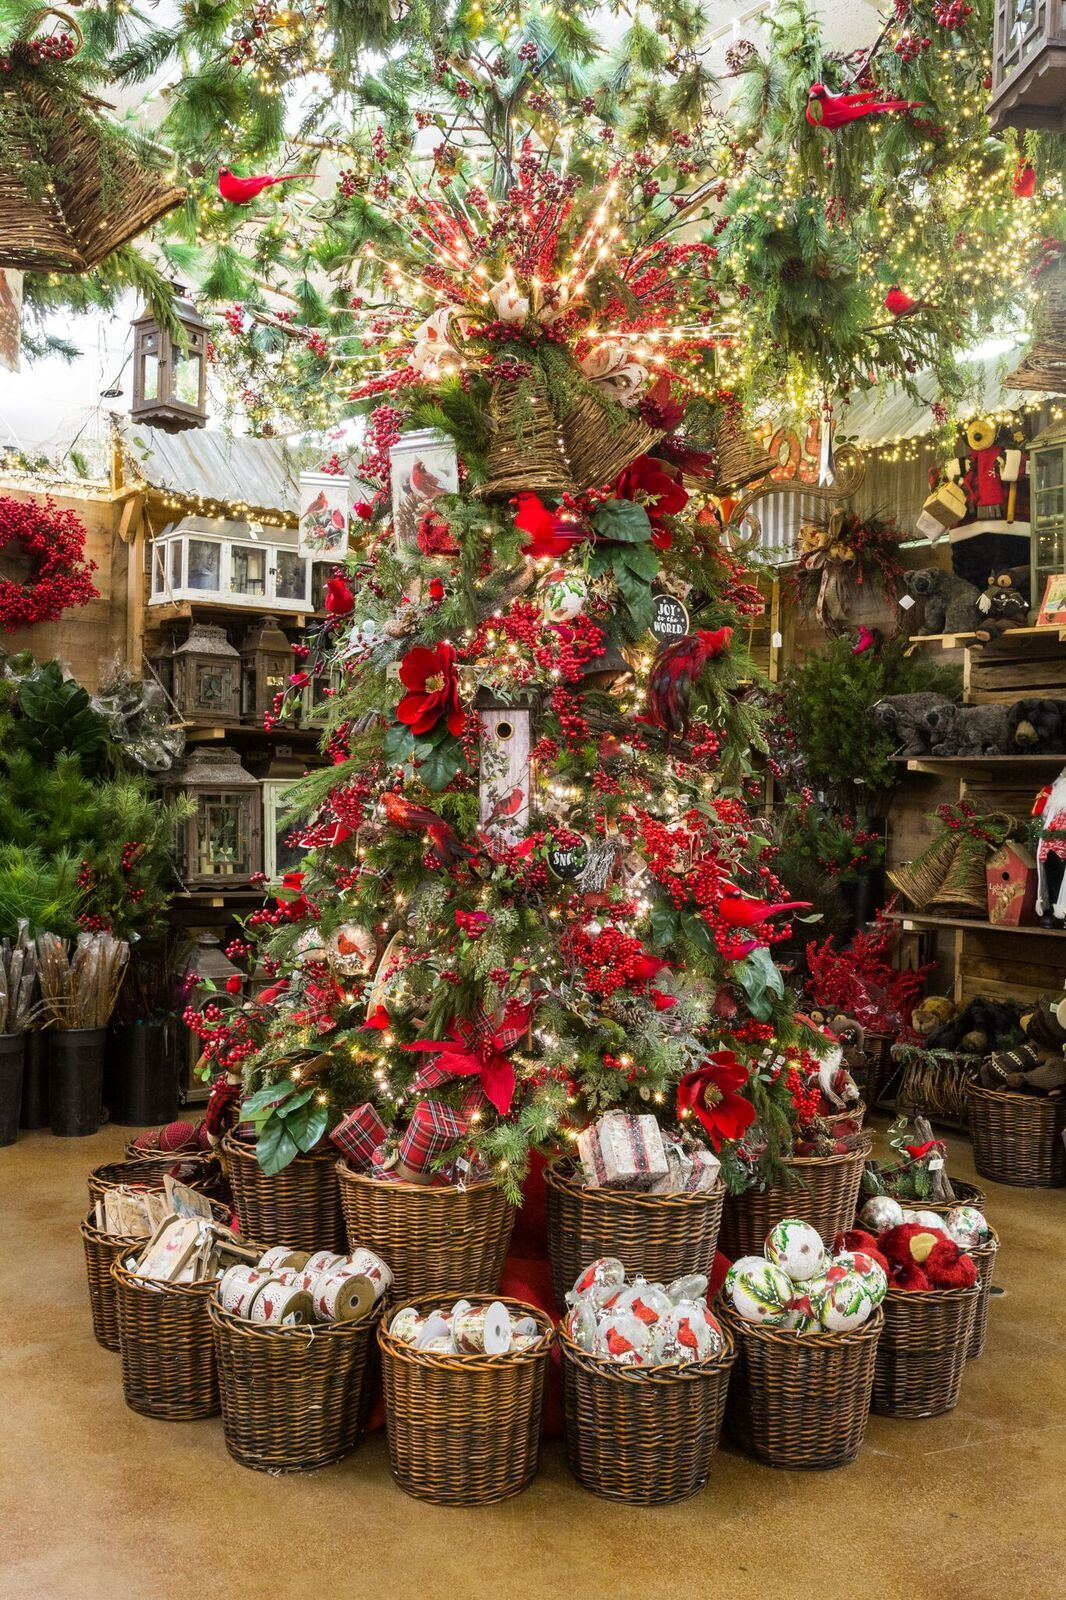 Christmas Tree Store Artificial Christmas Trees In Dallas Decorator S Wareh Christmas Store Displays Christmas Tree Inspiration Large Christmas Decorations